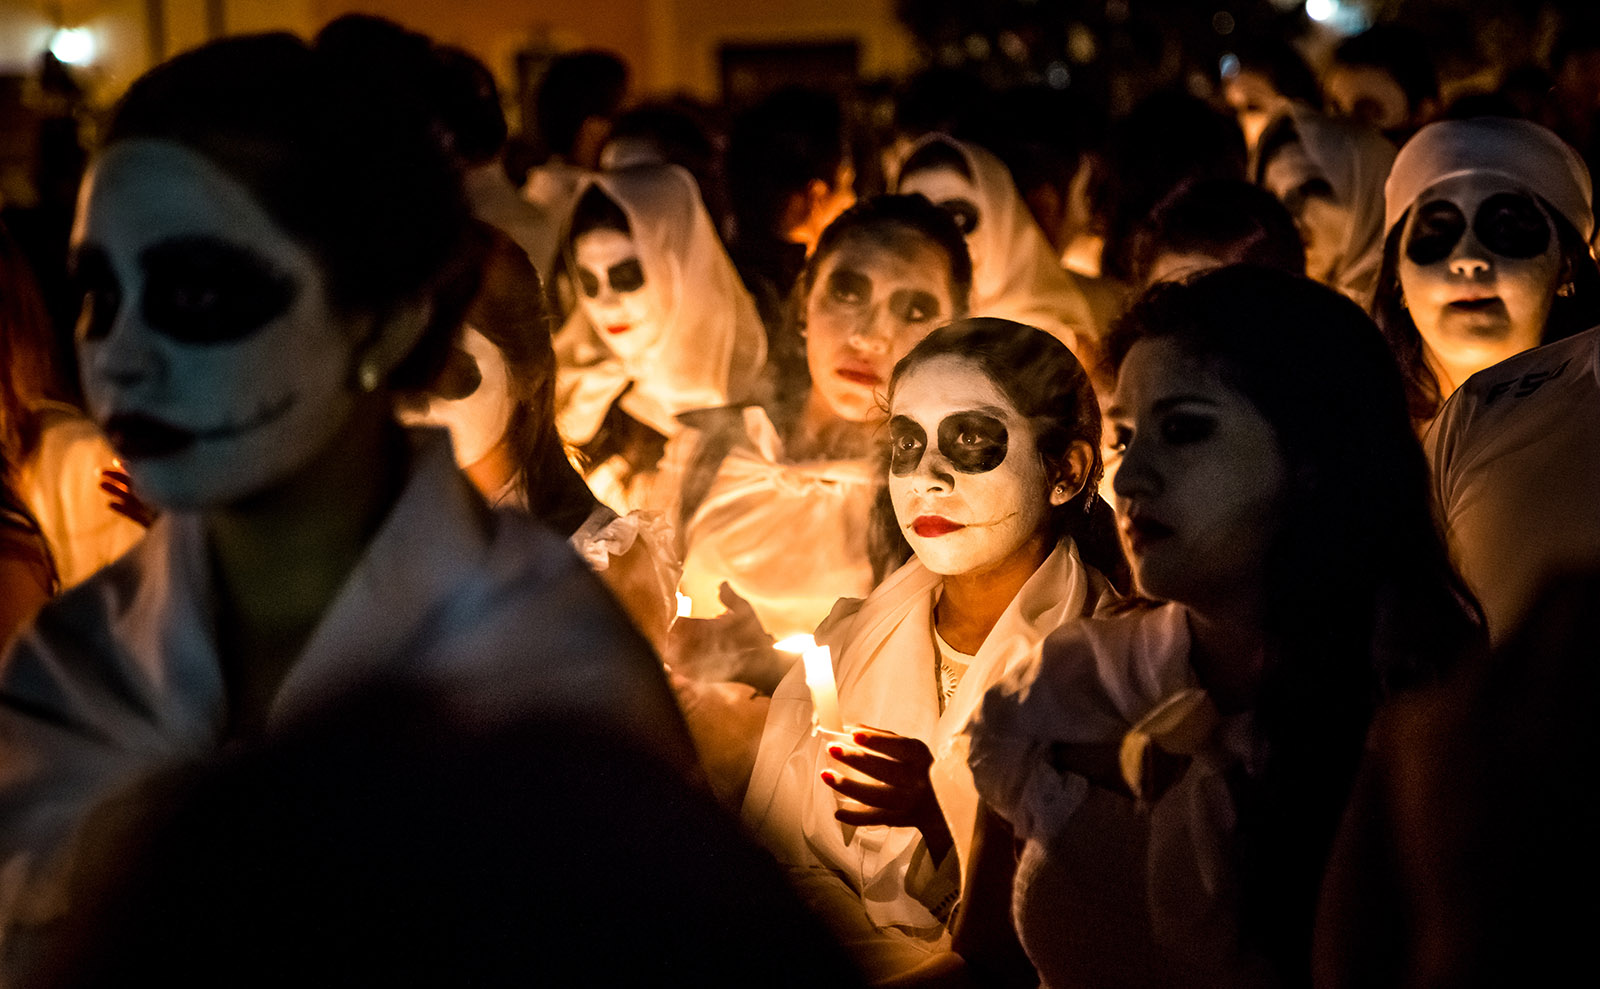 Day of the Dead, Literary Destinations, Budapest Inspiration & More: Endnotes 30 October